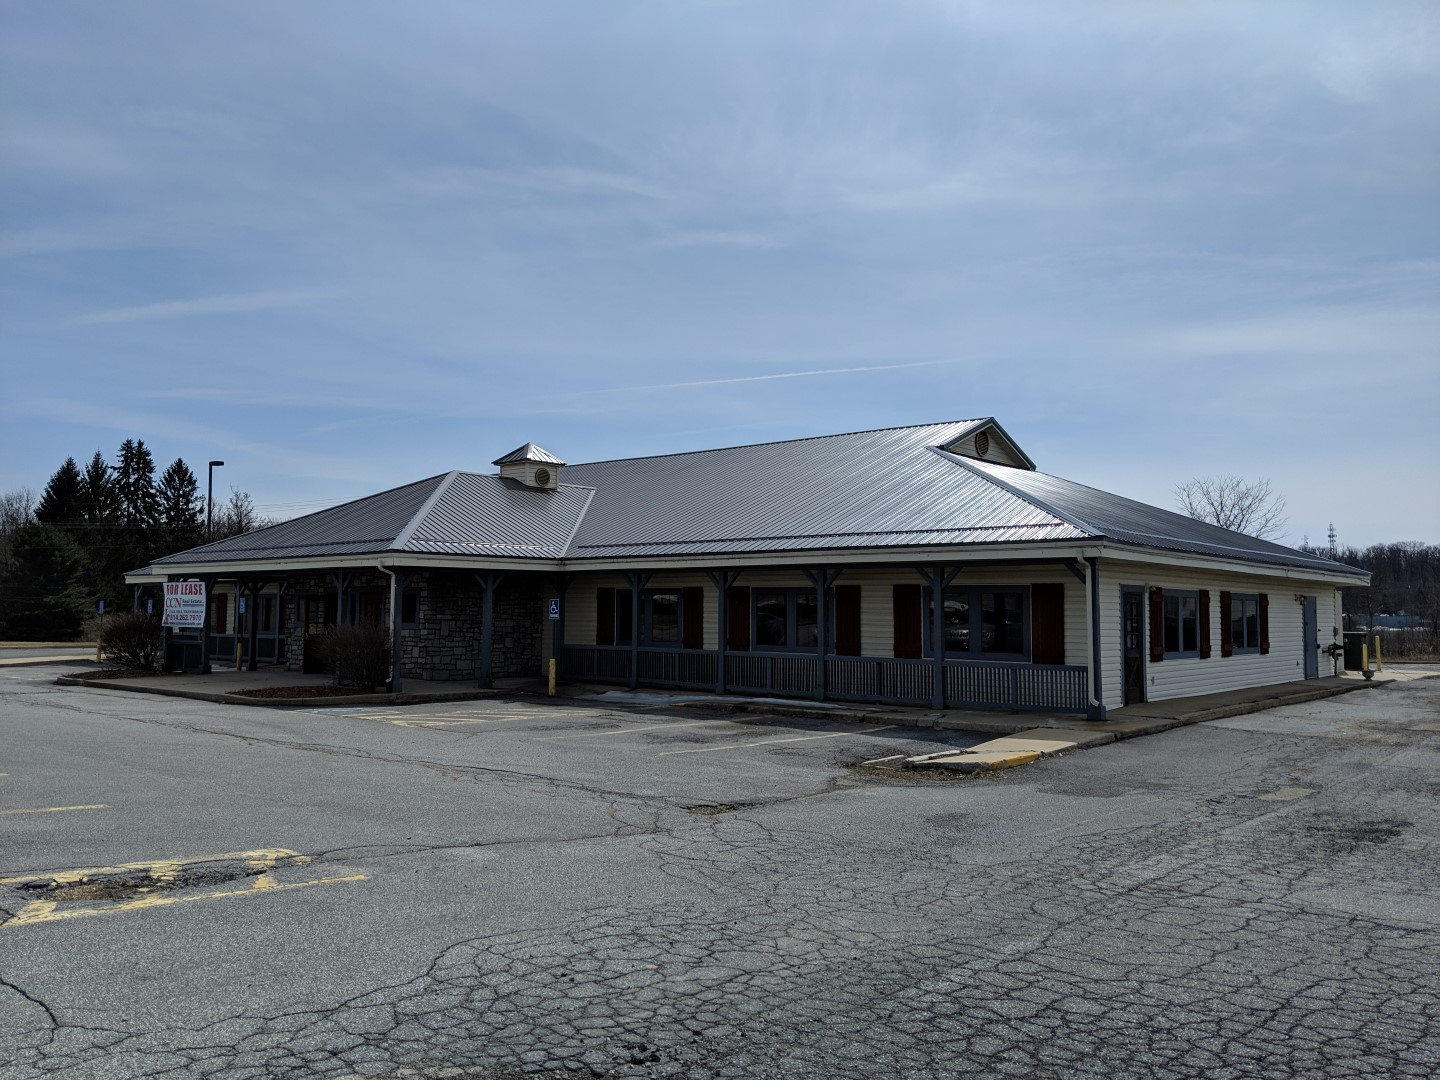 406 Galleria Drive, Richland Township, Johnstown PA 15904 - For Lease NNN $5,000 / month